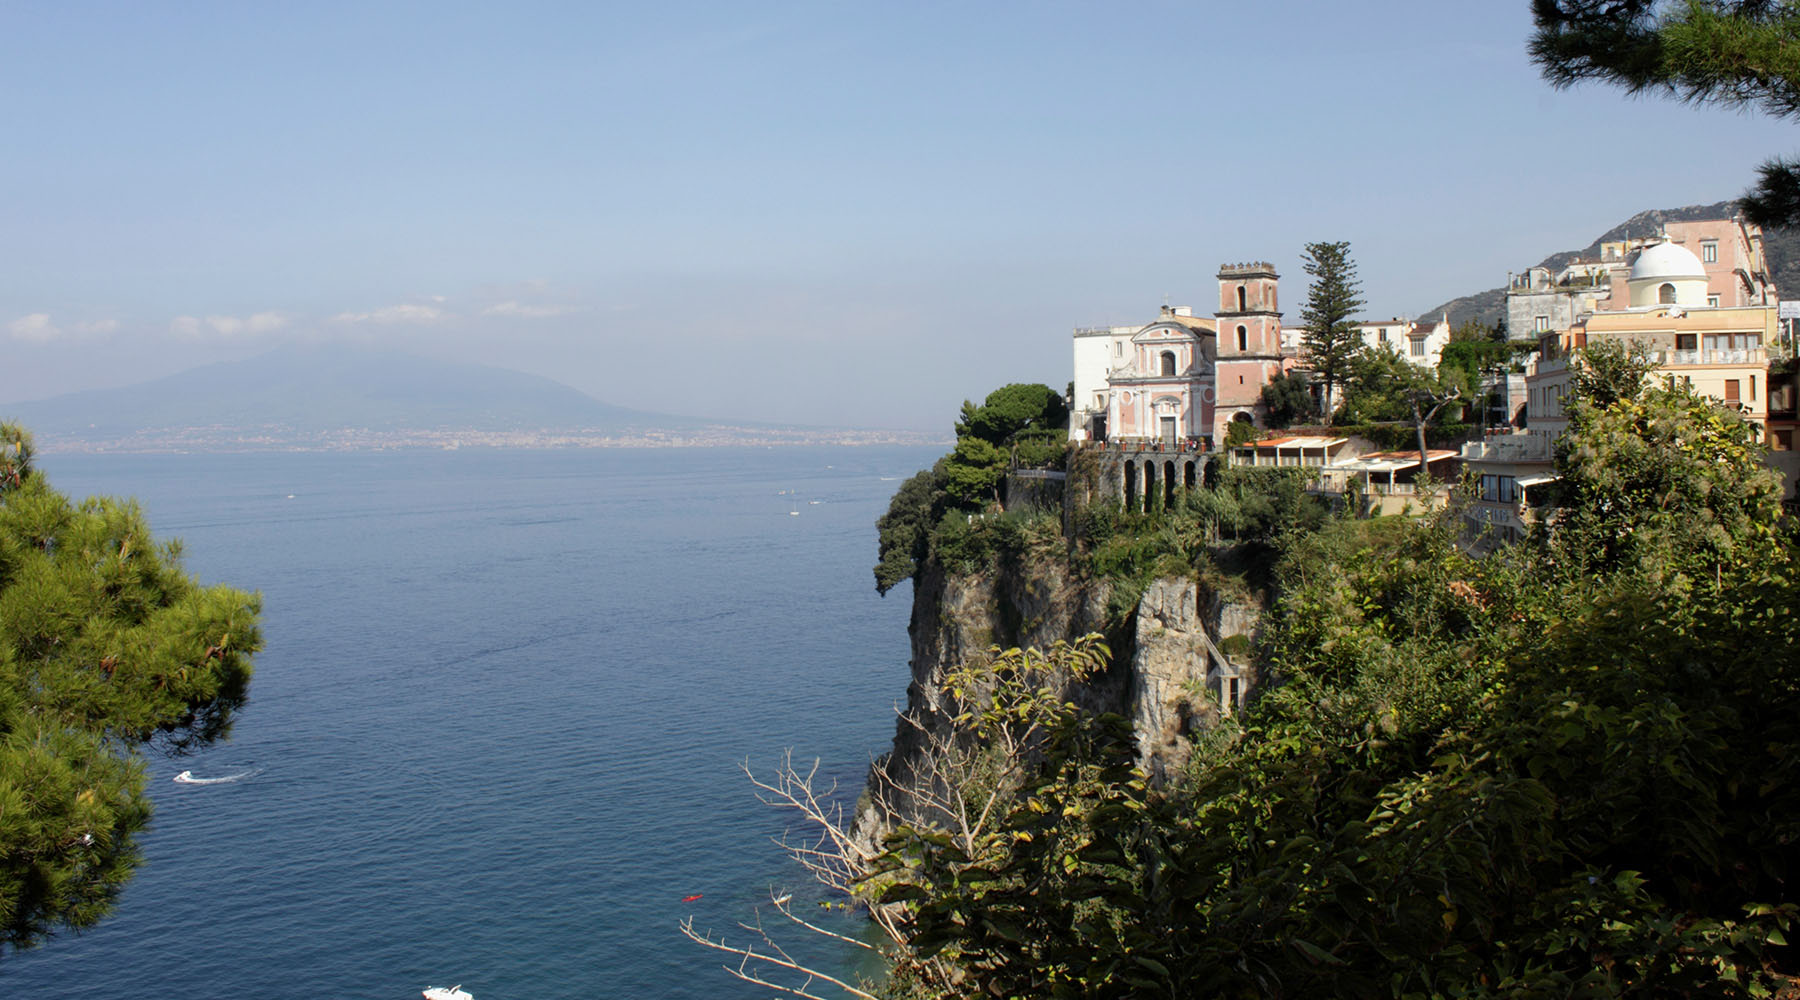 10 NIGHT AMALFI COAST & ADRIATIC VOYAGE